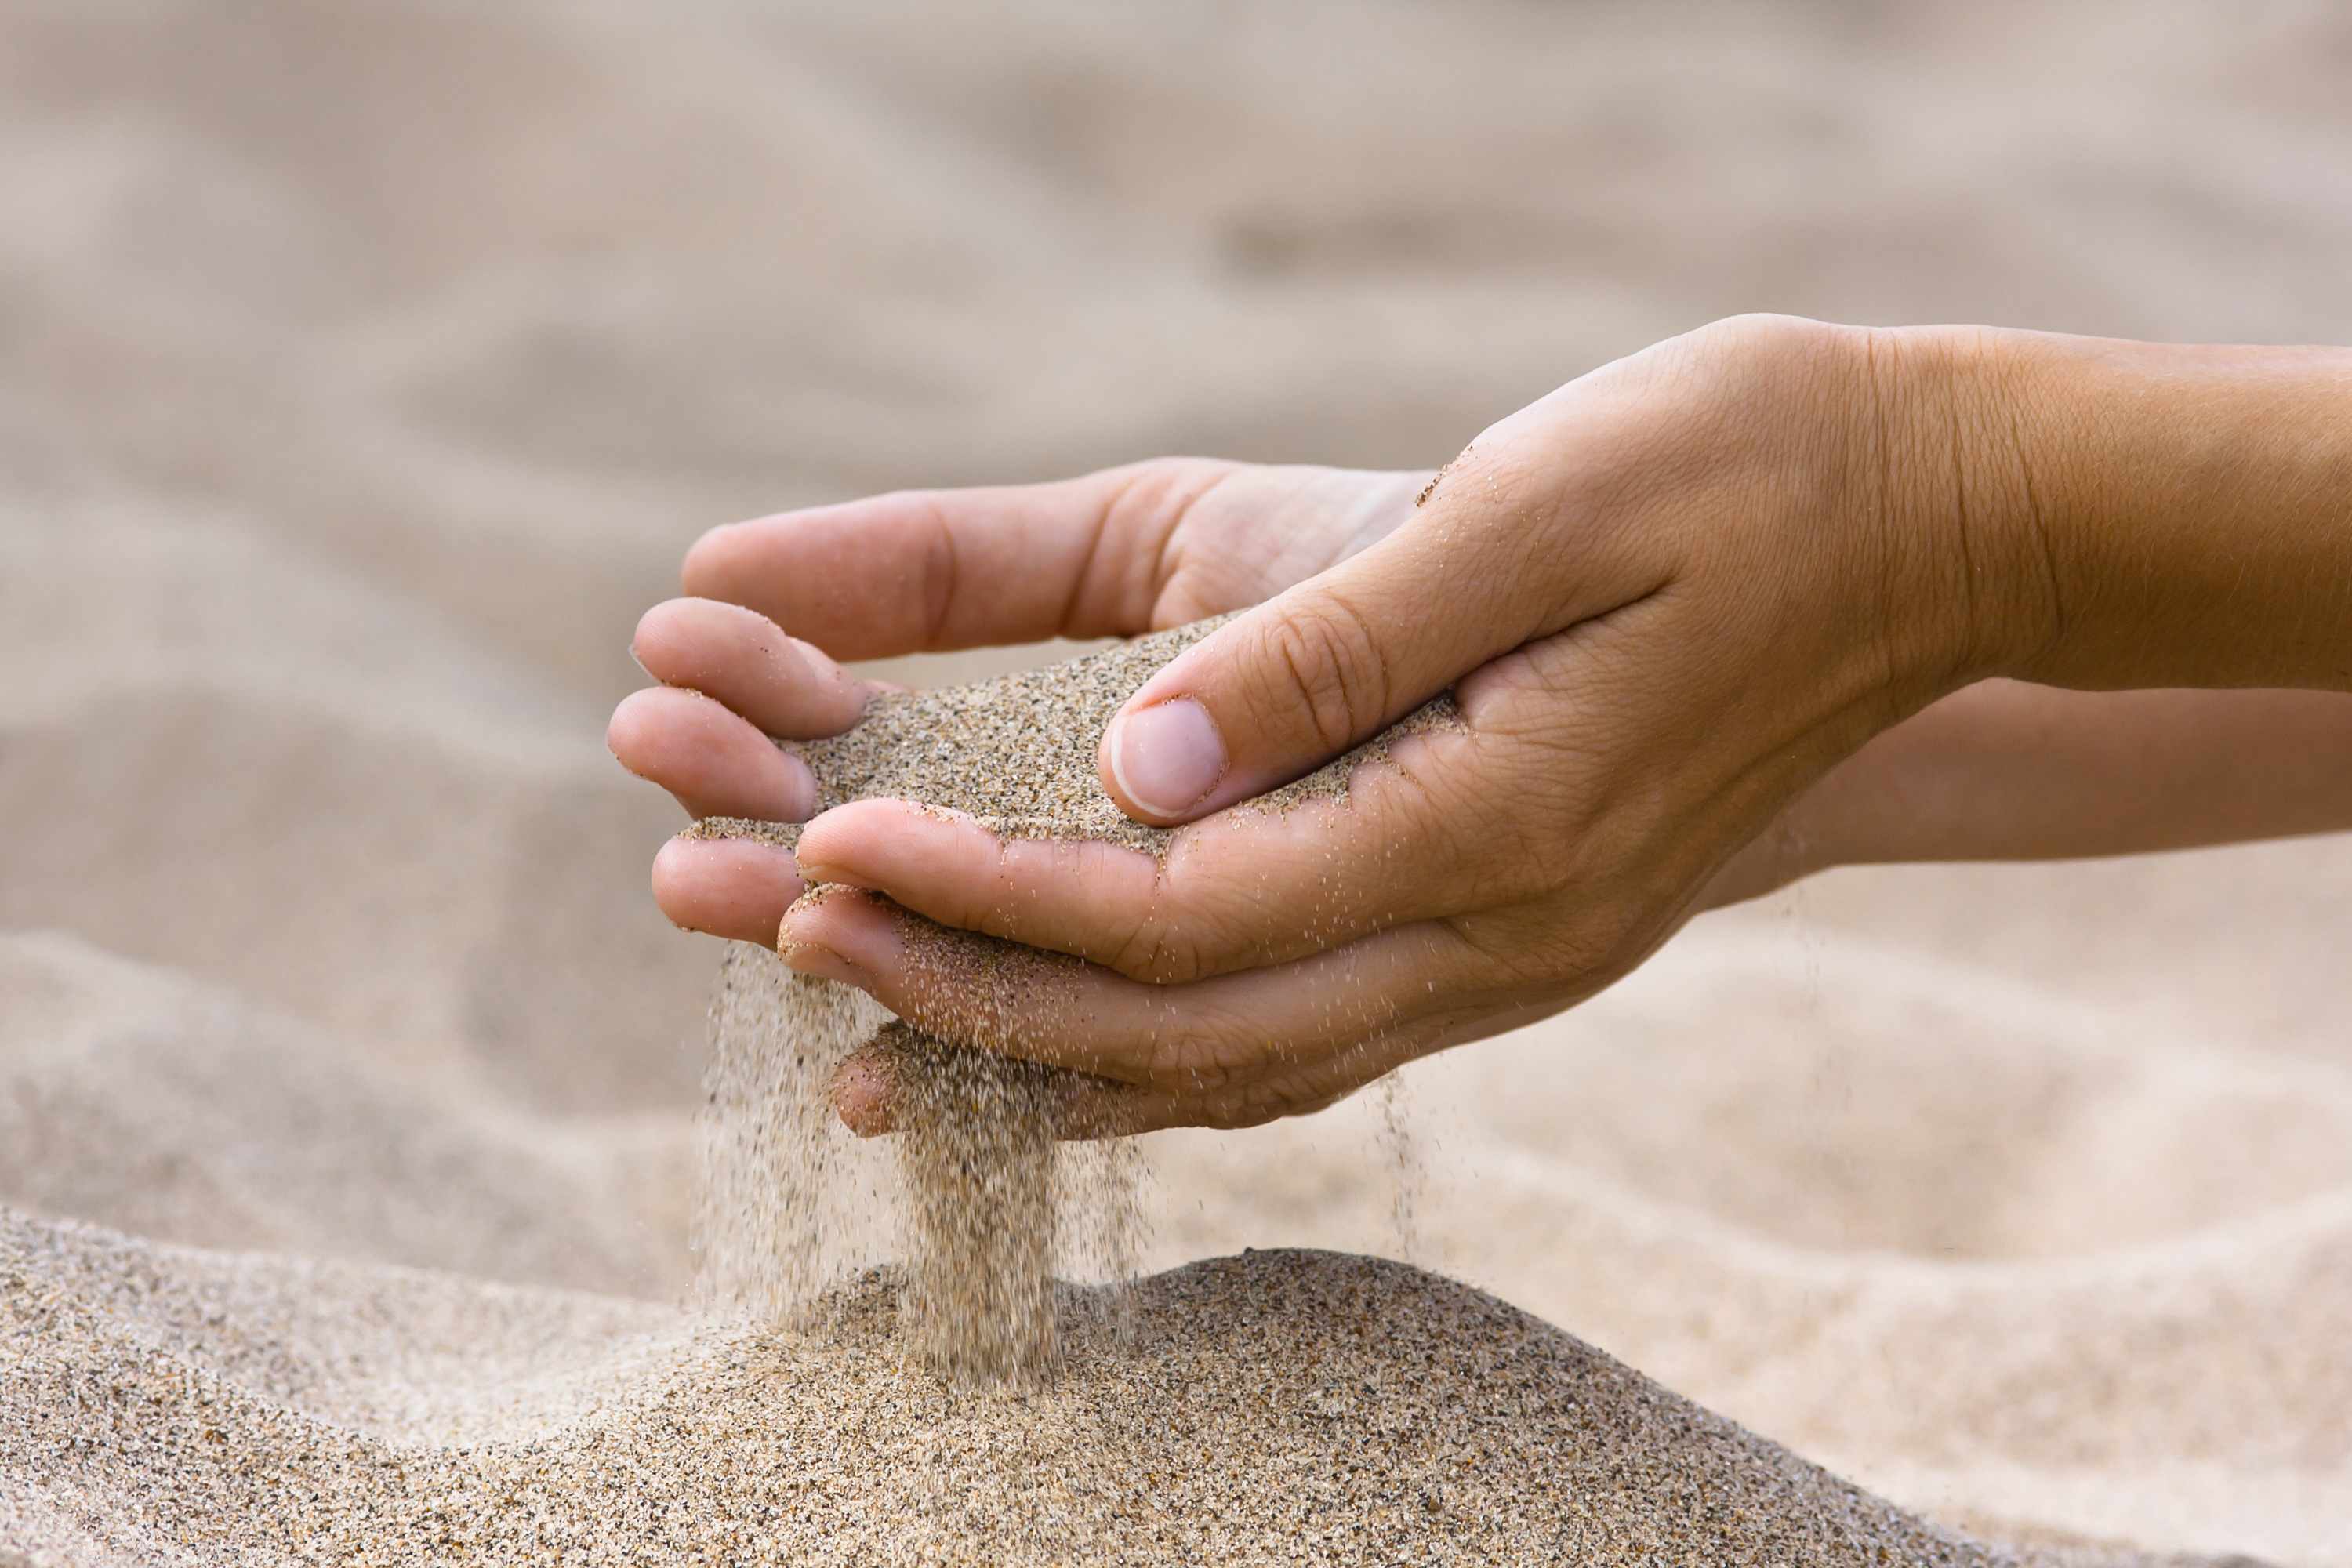 sand running through hands of woman - KnowledgePoint KnowledgePoint